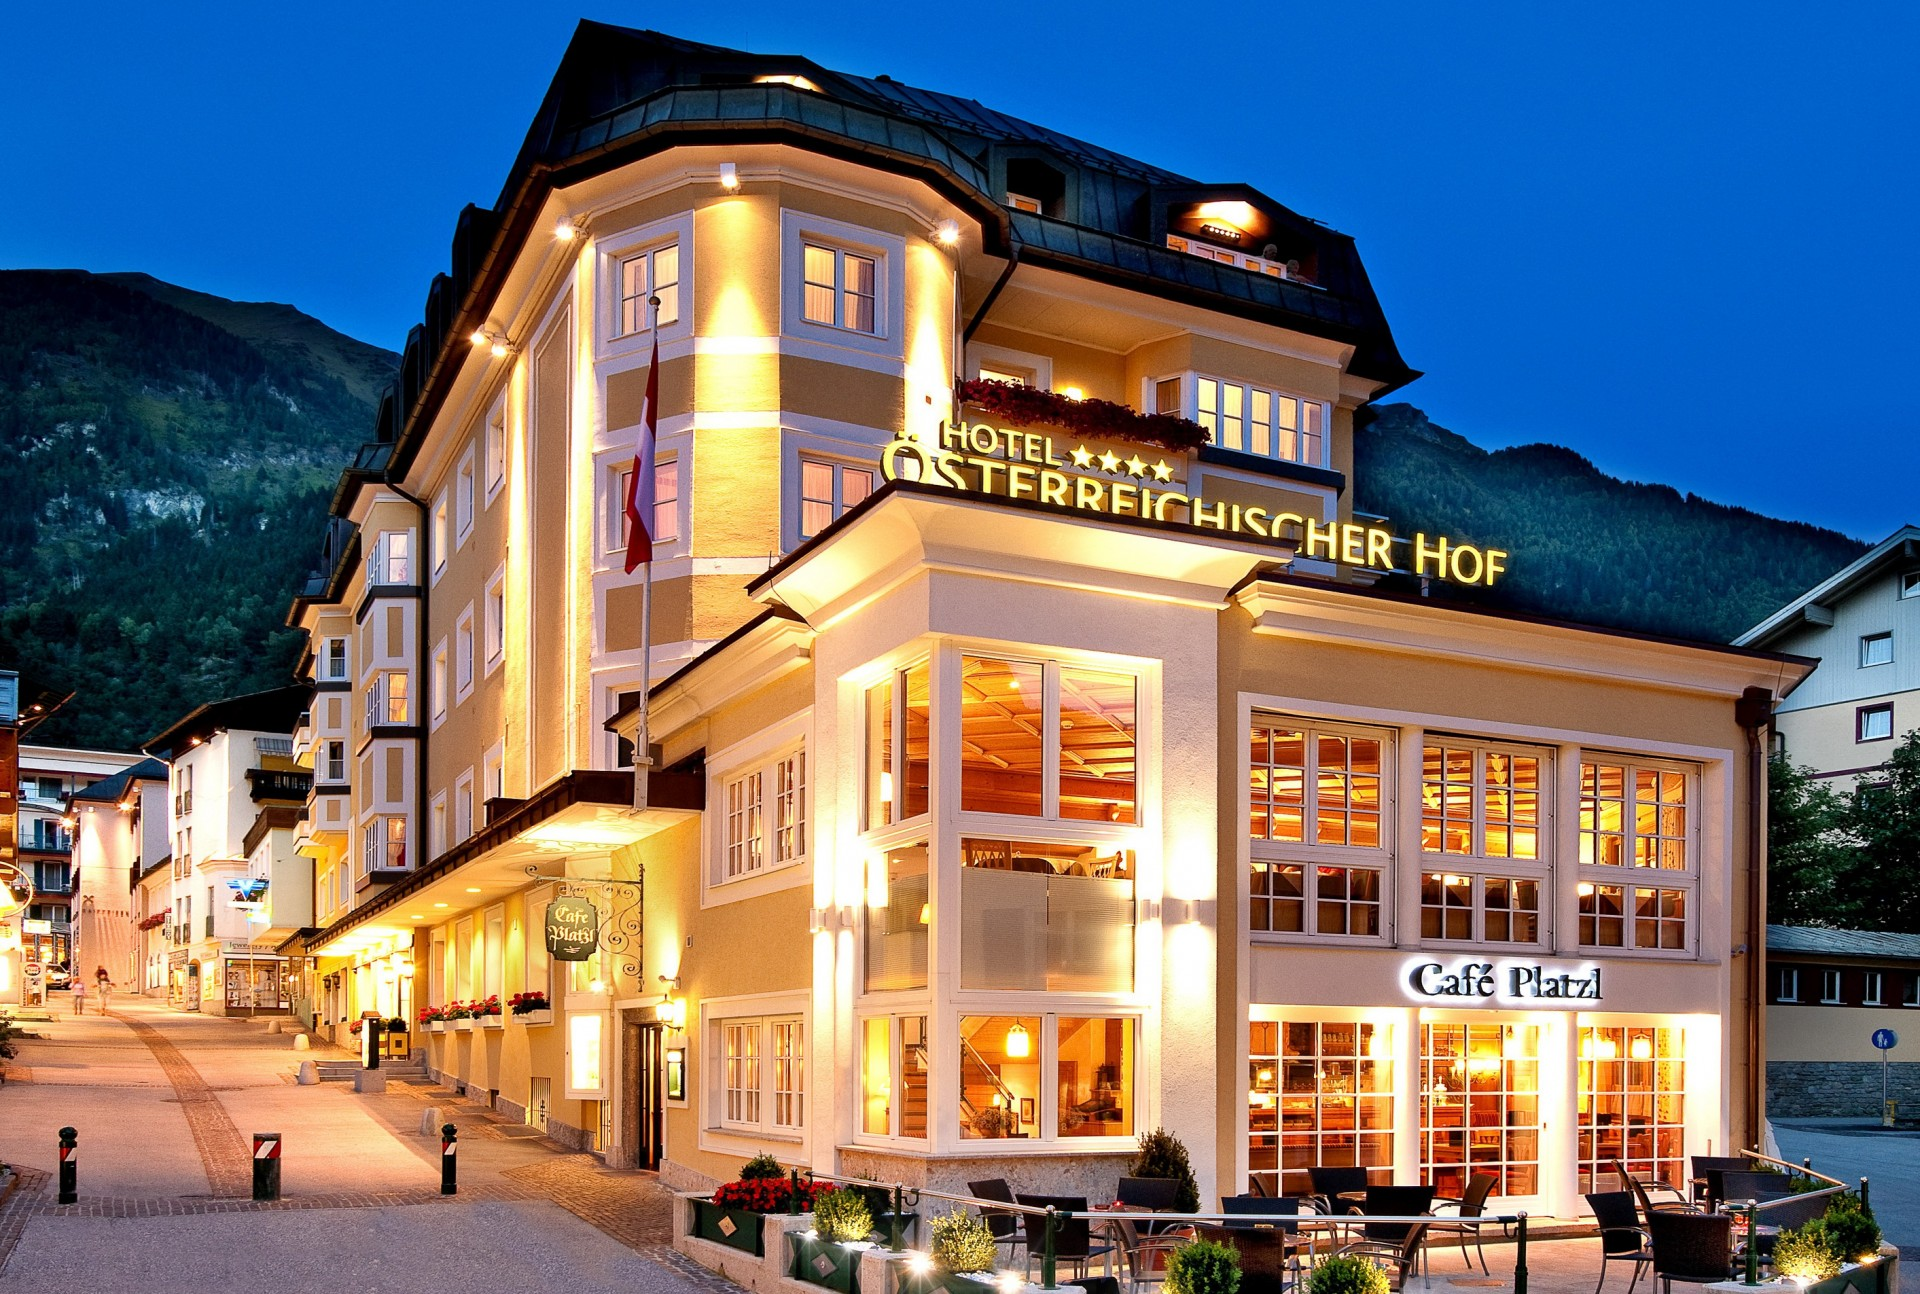 Hotel Germania Bad Hofgastein Austria